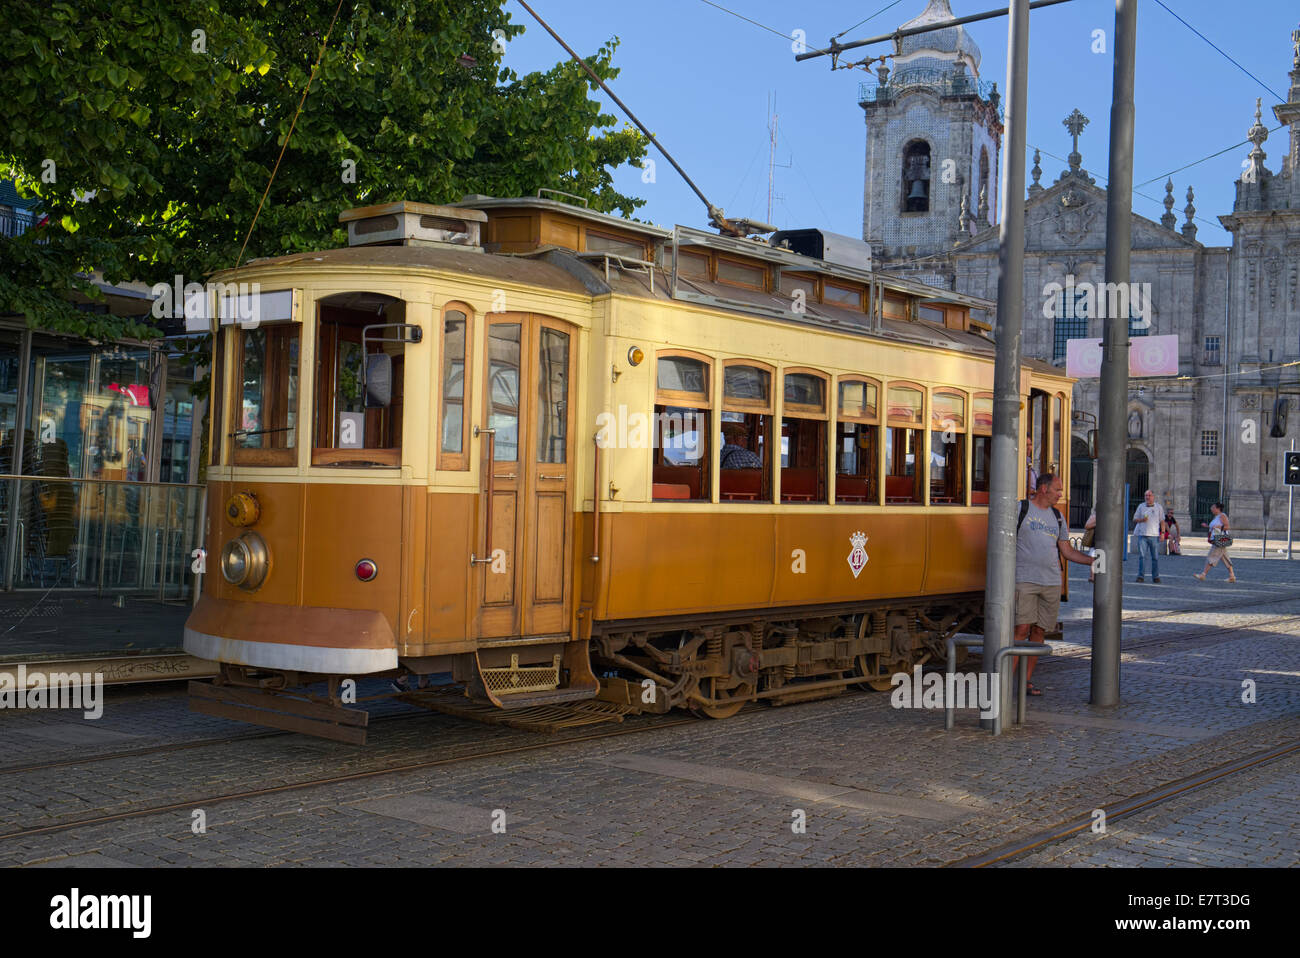 Old electric tram Oporto Portugal - Stock Image